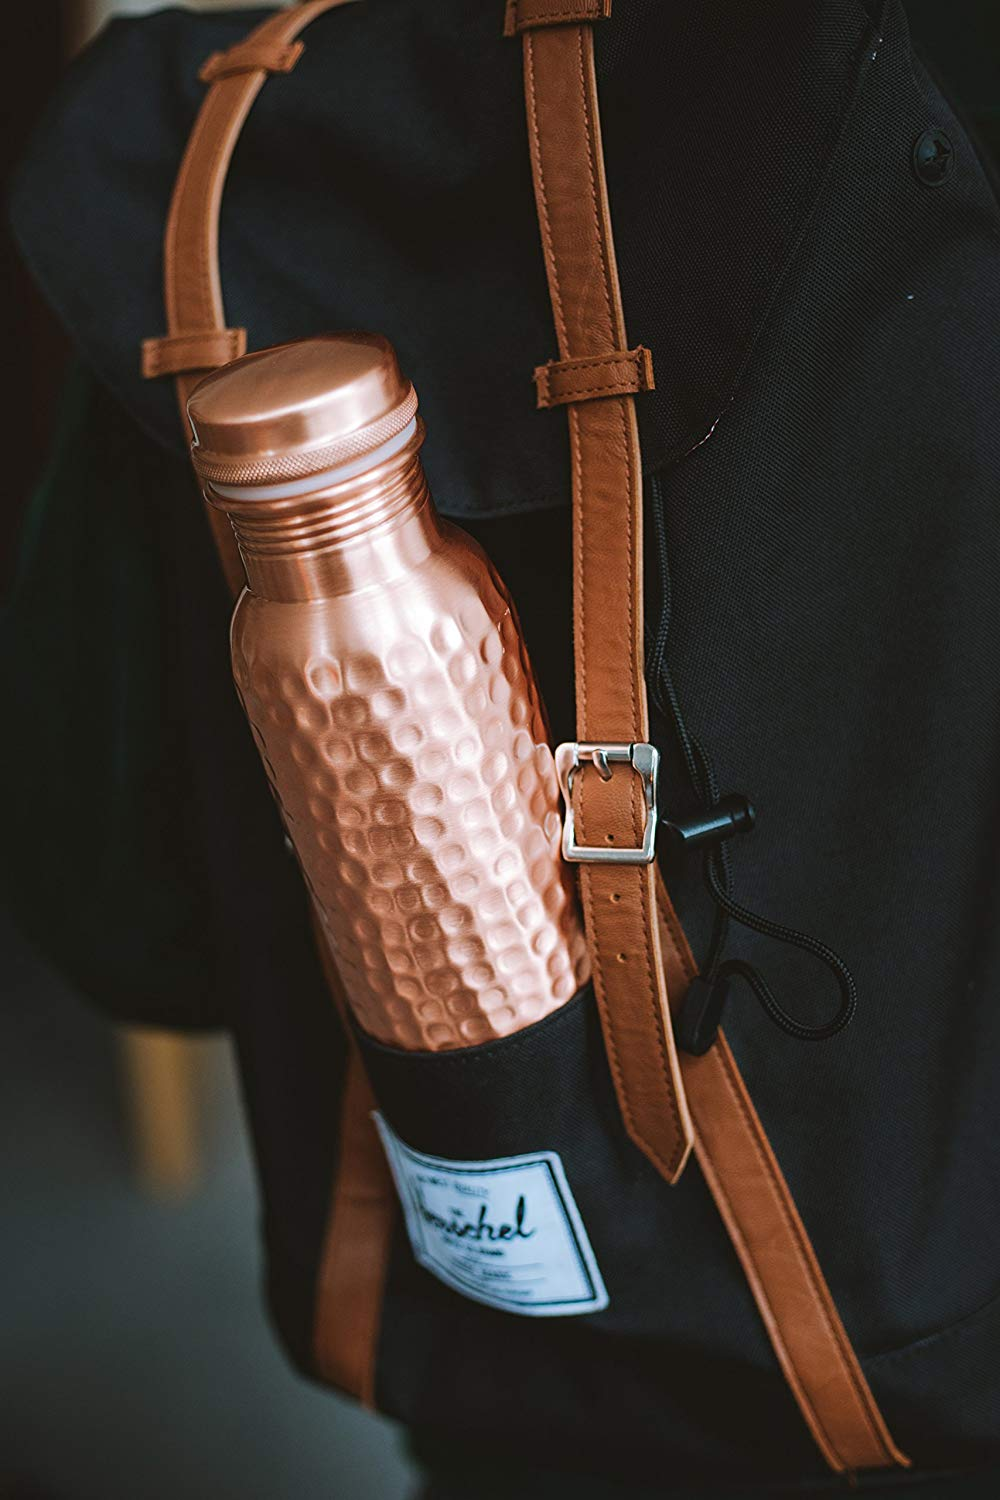 Copper Water Bottle - Hammered by hand